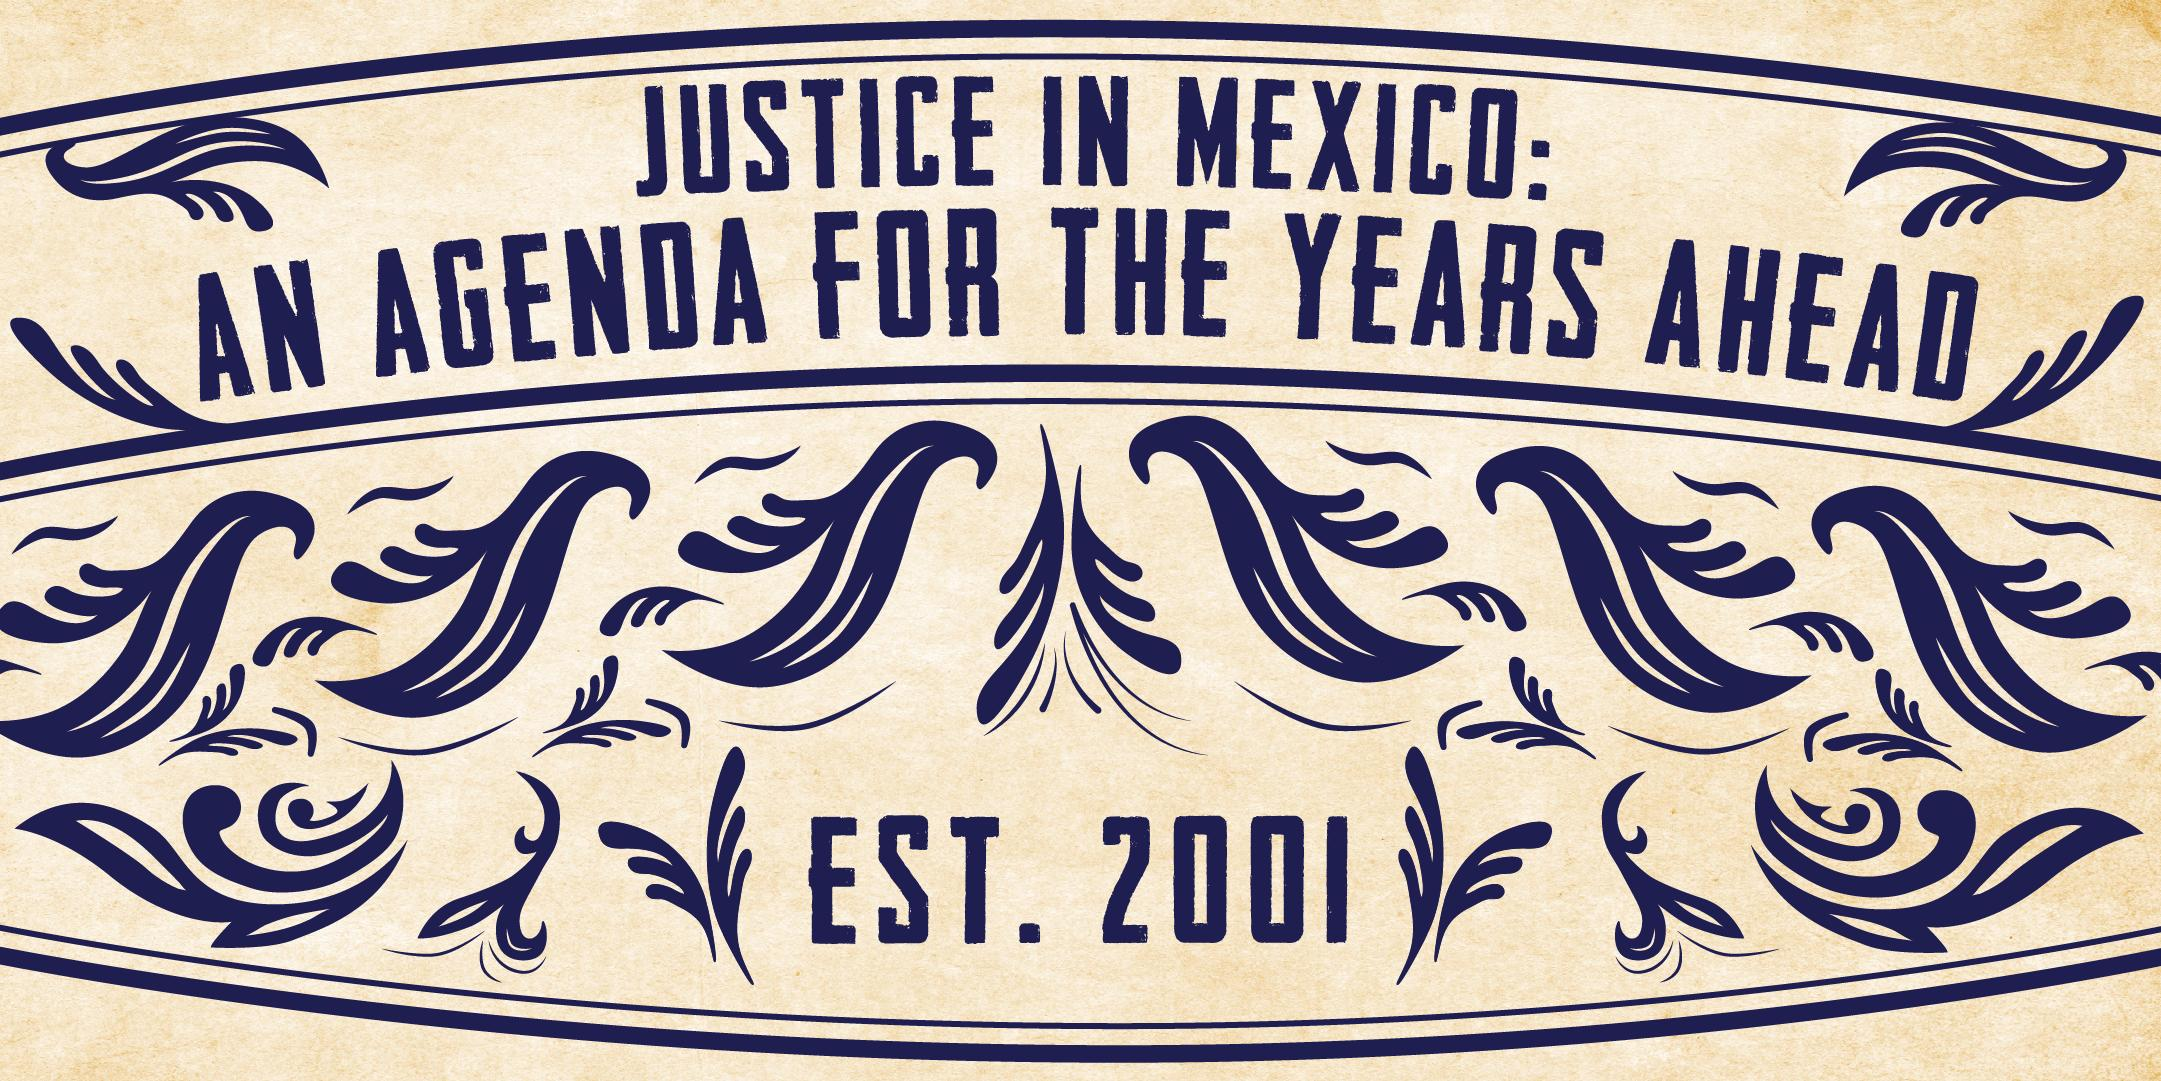 Celebrate Justice in Mexico's 15 year anniversary August 11, 2017